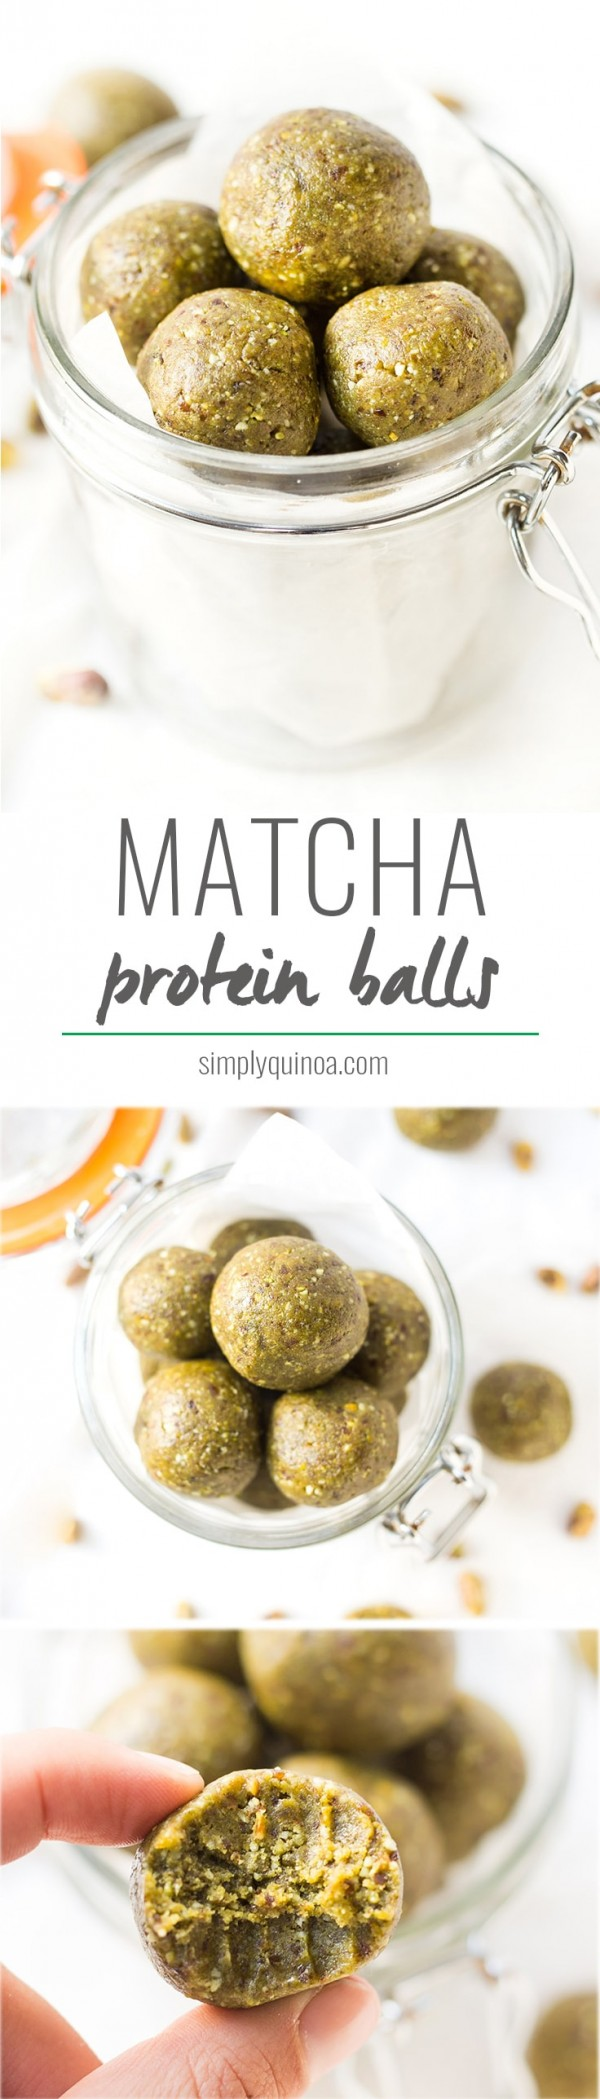 A fun way to use matcha, these matcha protein balls are a cinch to make! They're packed with protein, healthy fats and make the perfect on-the-go snack!